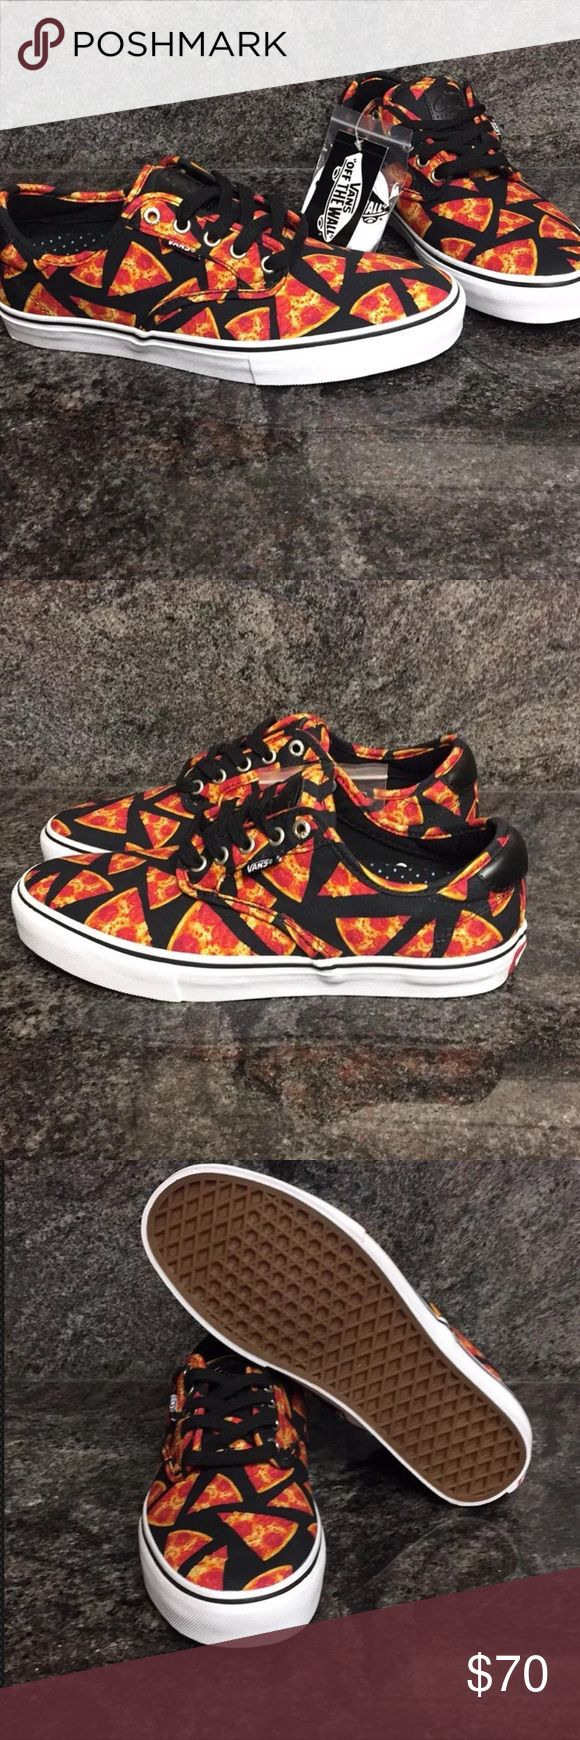 Vans Chima Ferguson Pro Digi Pizza Skate Shoes Vans Chima Ferguson Pro Digi Pizza Skate Shoes New with tag  Size: Men's 11.5 These great shoes have ultra cush lite insoles and a fun pizza design. They come with an extra white pair of shoes laces. Vans Shoes Sneakers